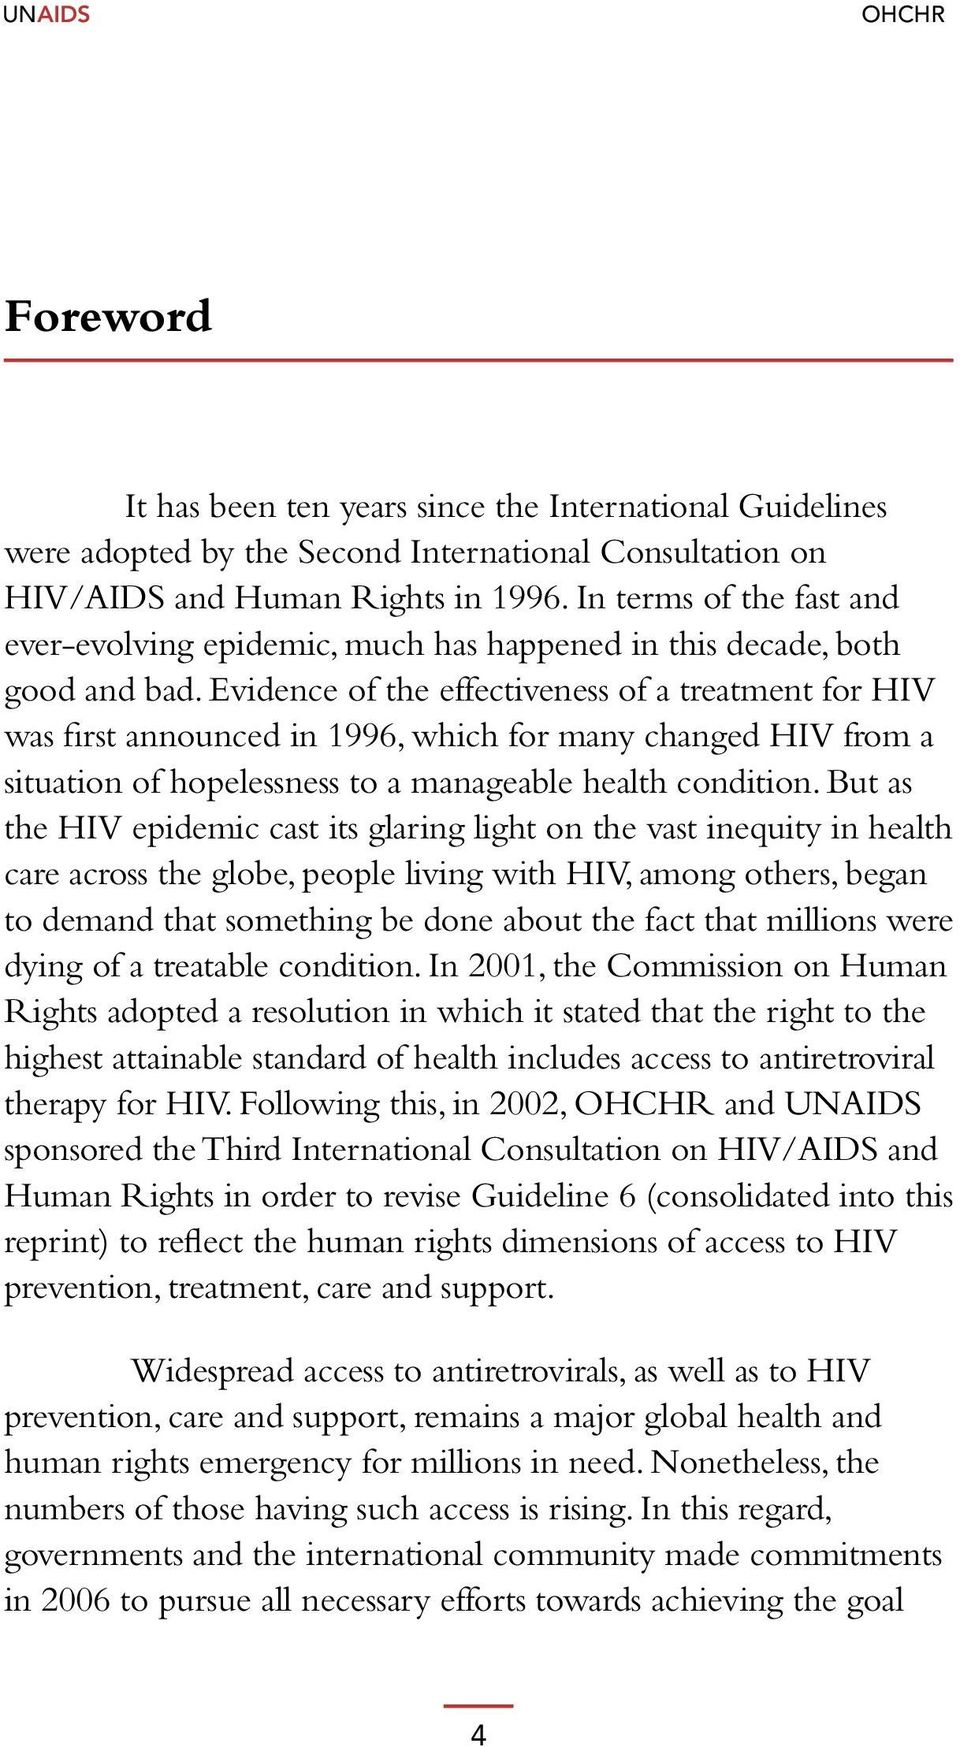 Evidence of the effectiveness of a treatment for HIV was first announced in 1996, which for many changed HIV from a situation of hopelessness to a manageable health condition.